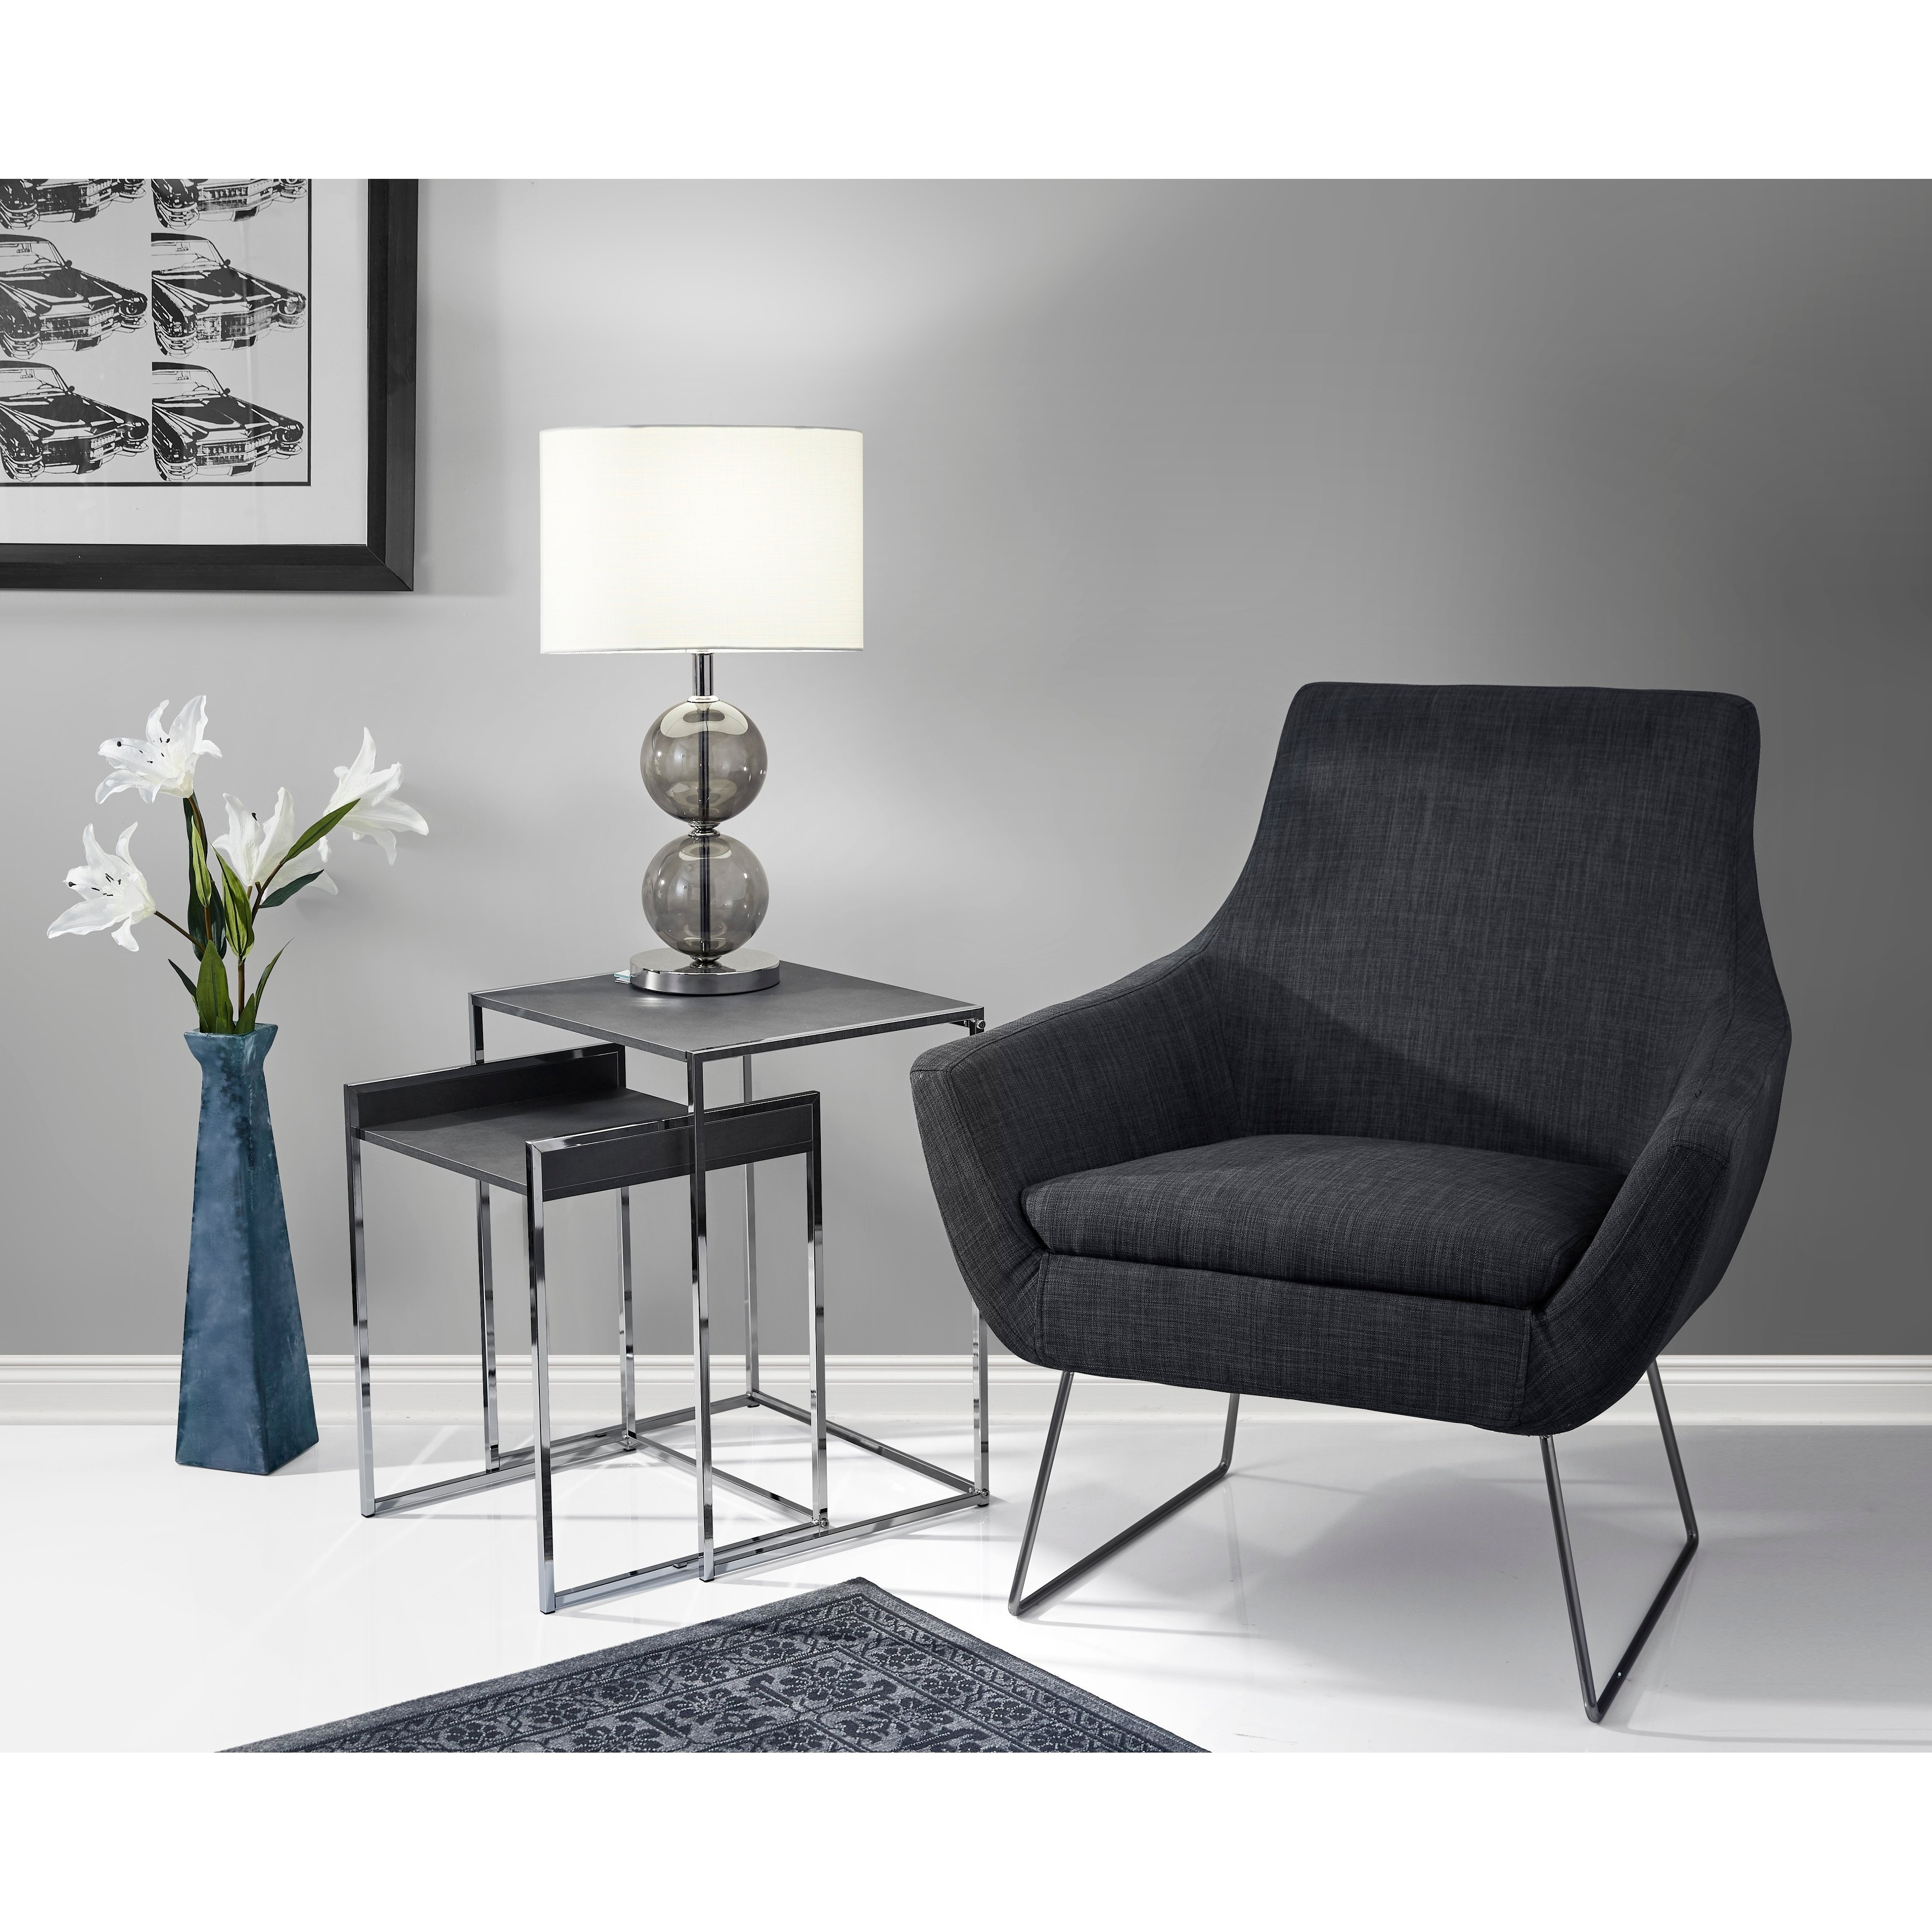 adesso ryder nesting tables free shipping today small accent table side and vintage hexagon round pedestal dining glass pendant shades barn door sofa youth furniture shallow